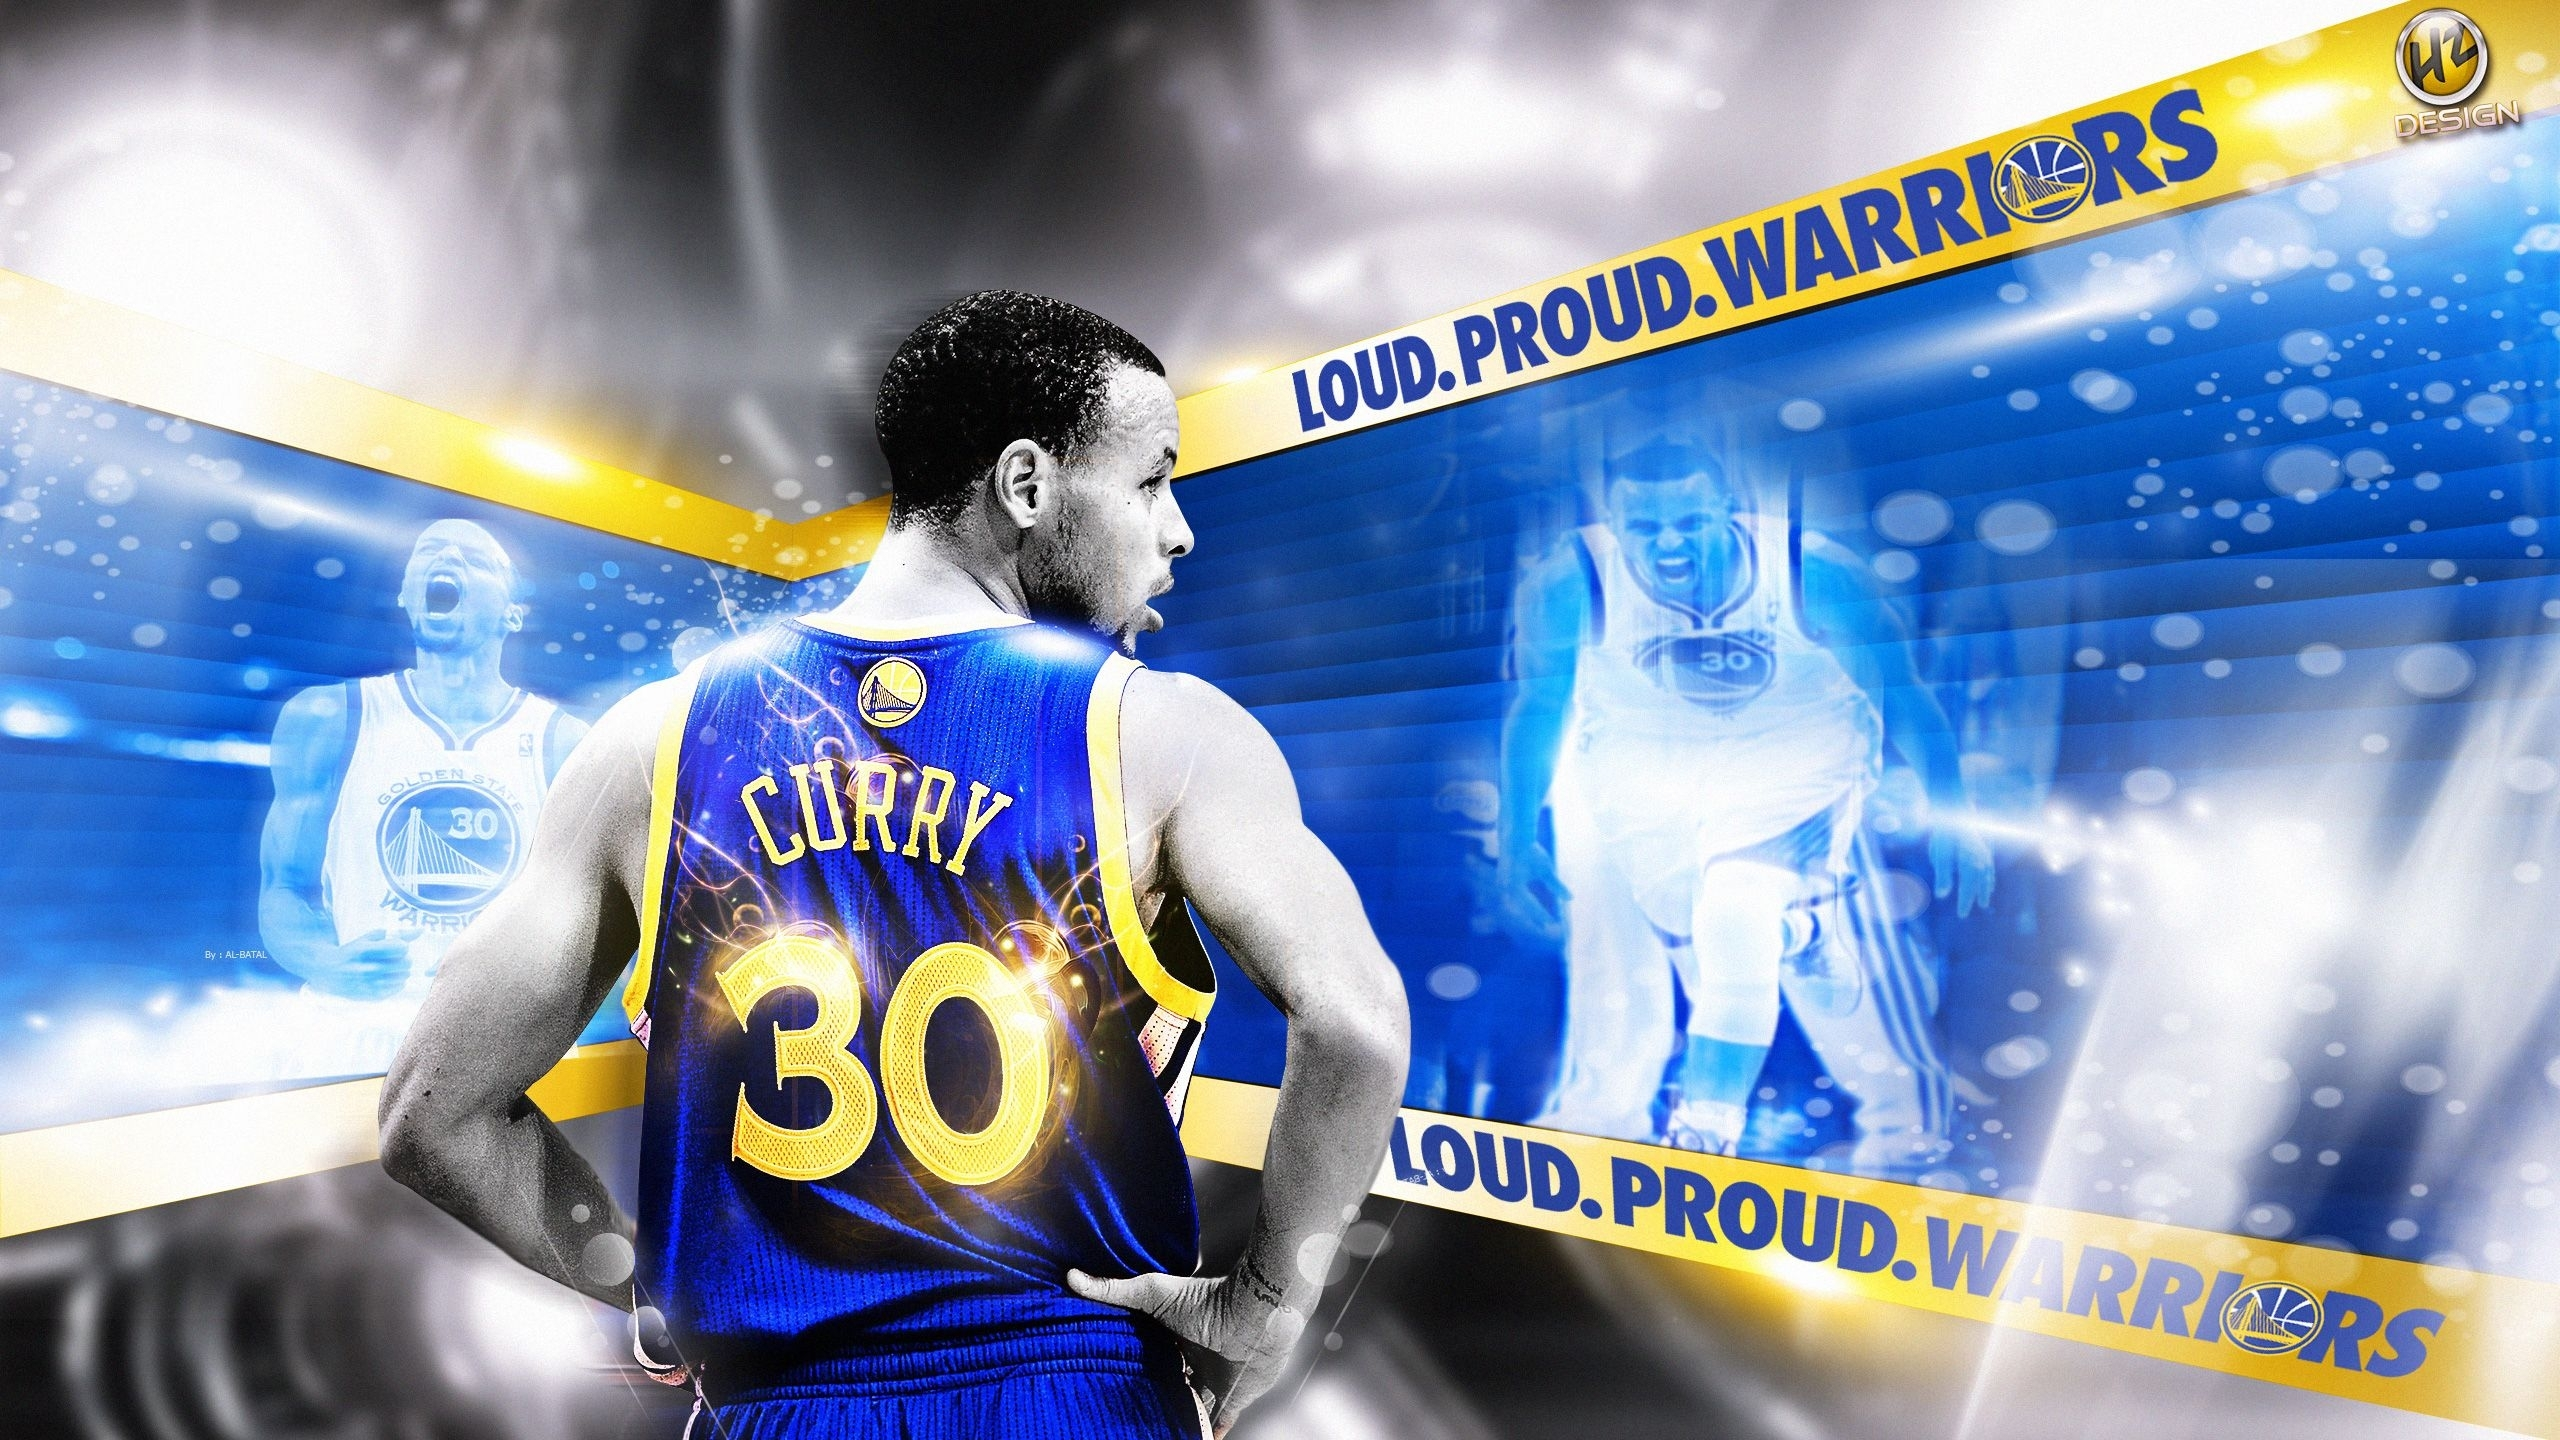 stephen curry background wallpaper | stephen curry wallpaper | pinterest